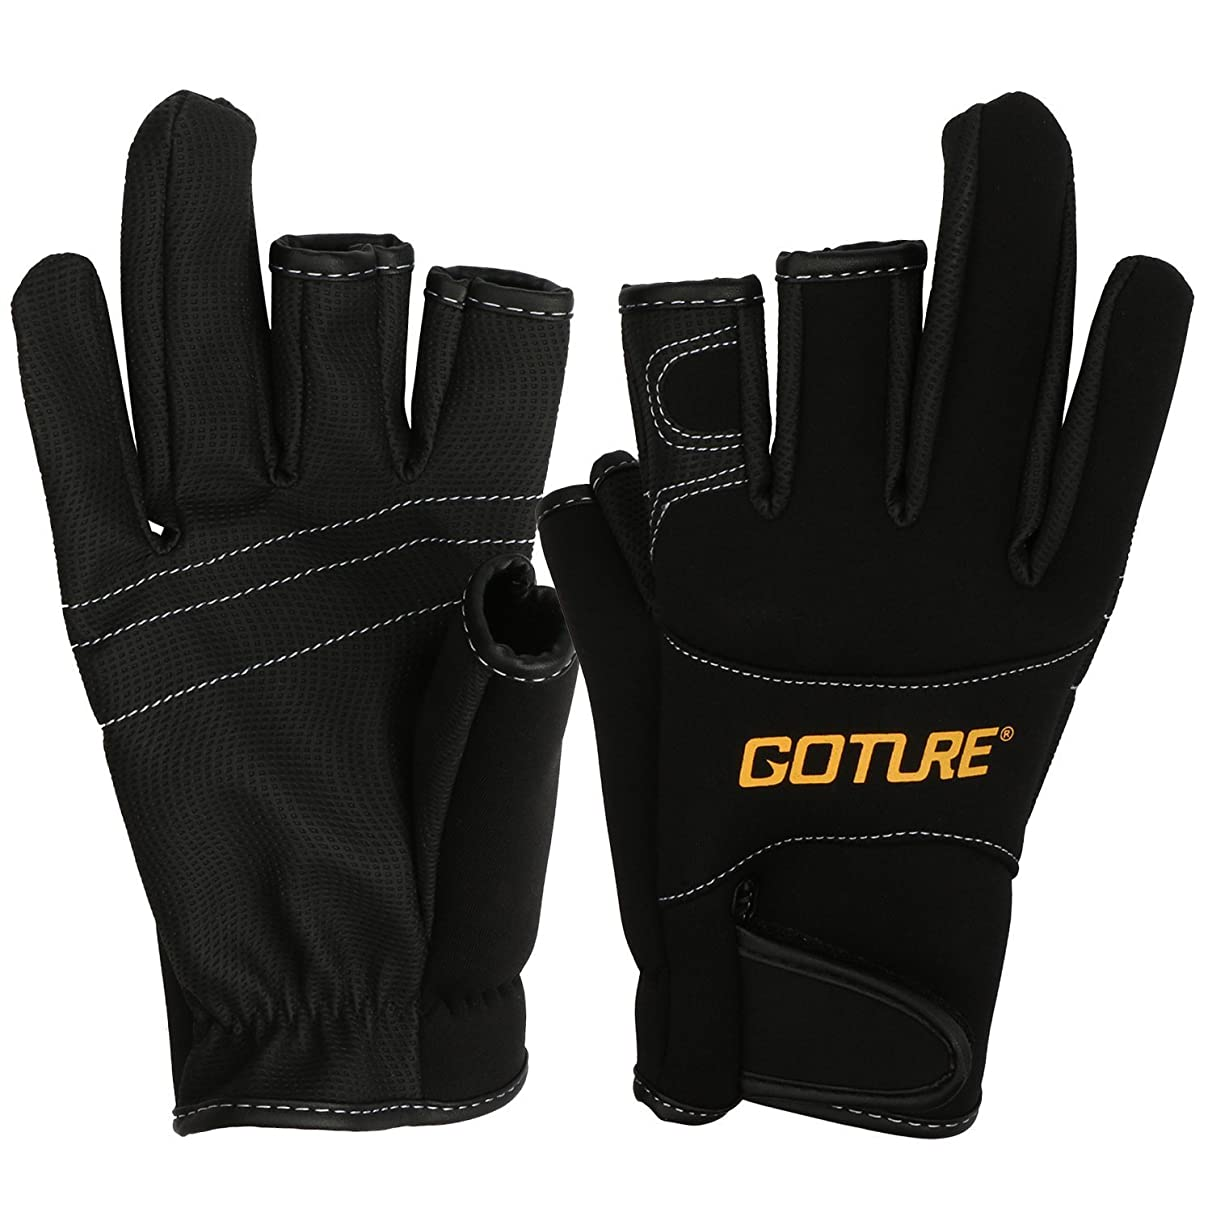 Goture Anti-Slip Fishing Gloves for Men Water Resistant Skidproof 3 Fingerless Outdoor Sports